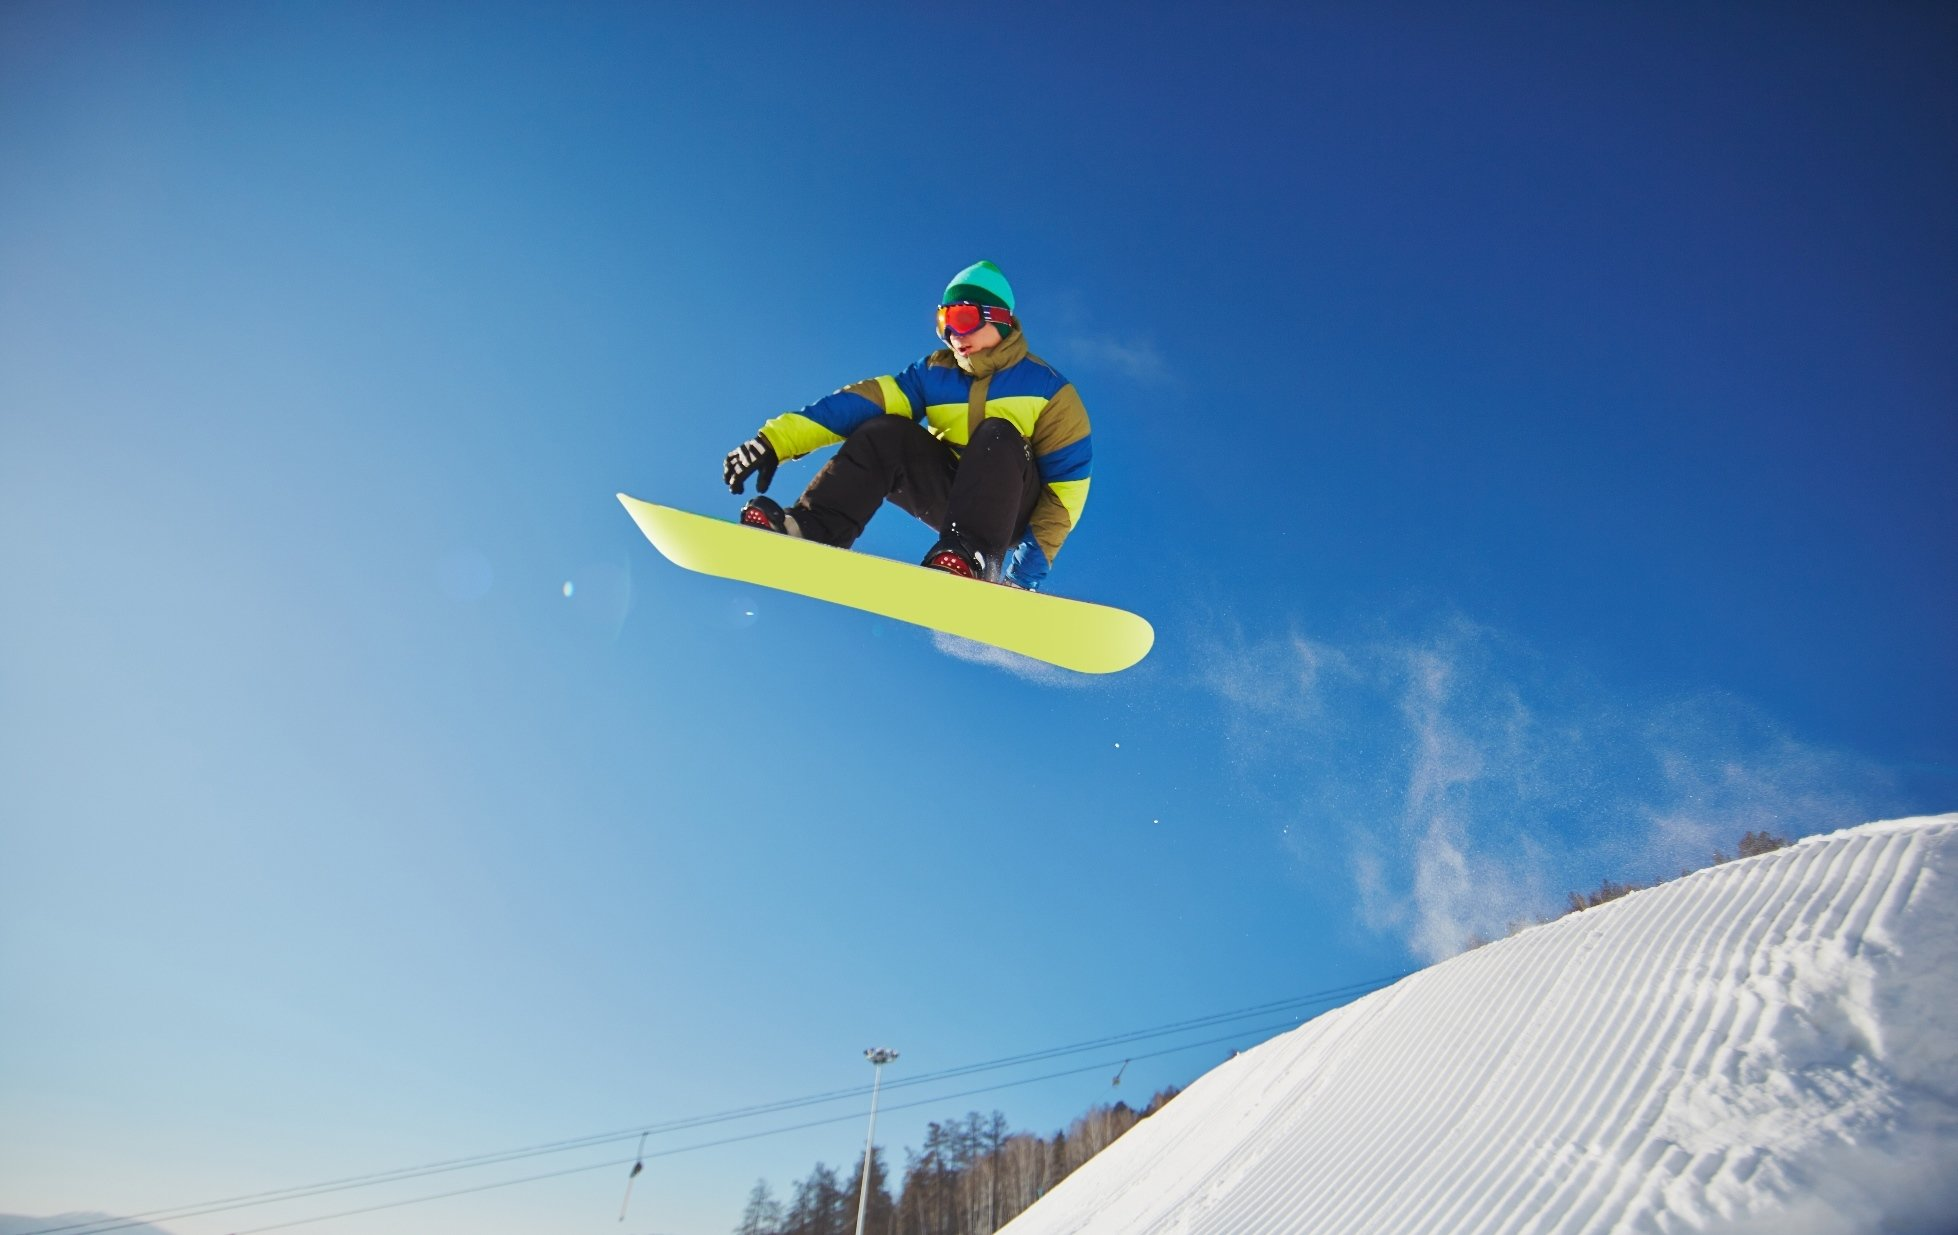 Top 6 places for skiing and snowboarding in Kyiv